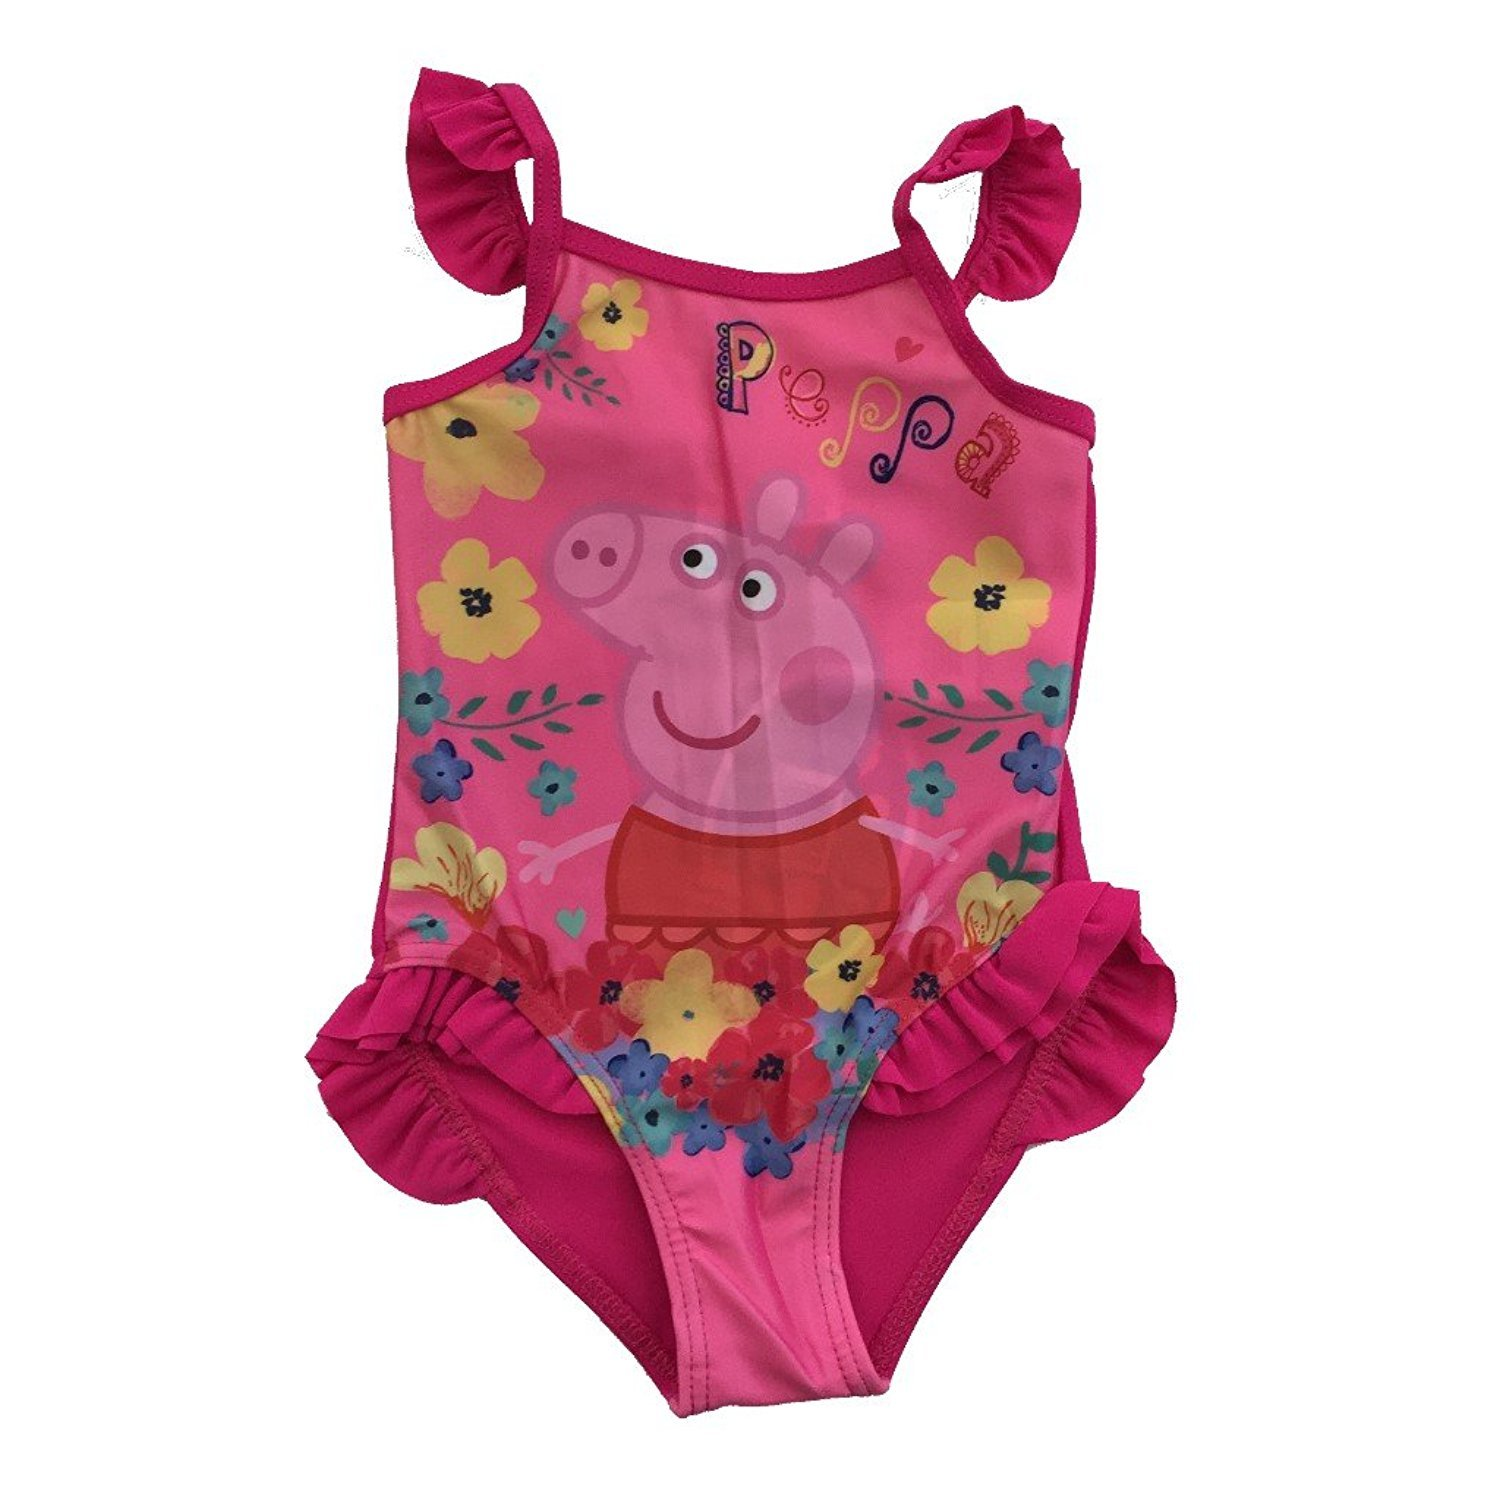 Peppa Pig Kids Boys and Girls Licensed Merchandise Swimming Costume Swimsuit